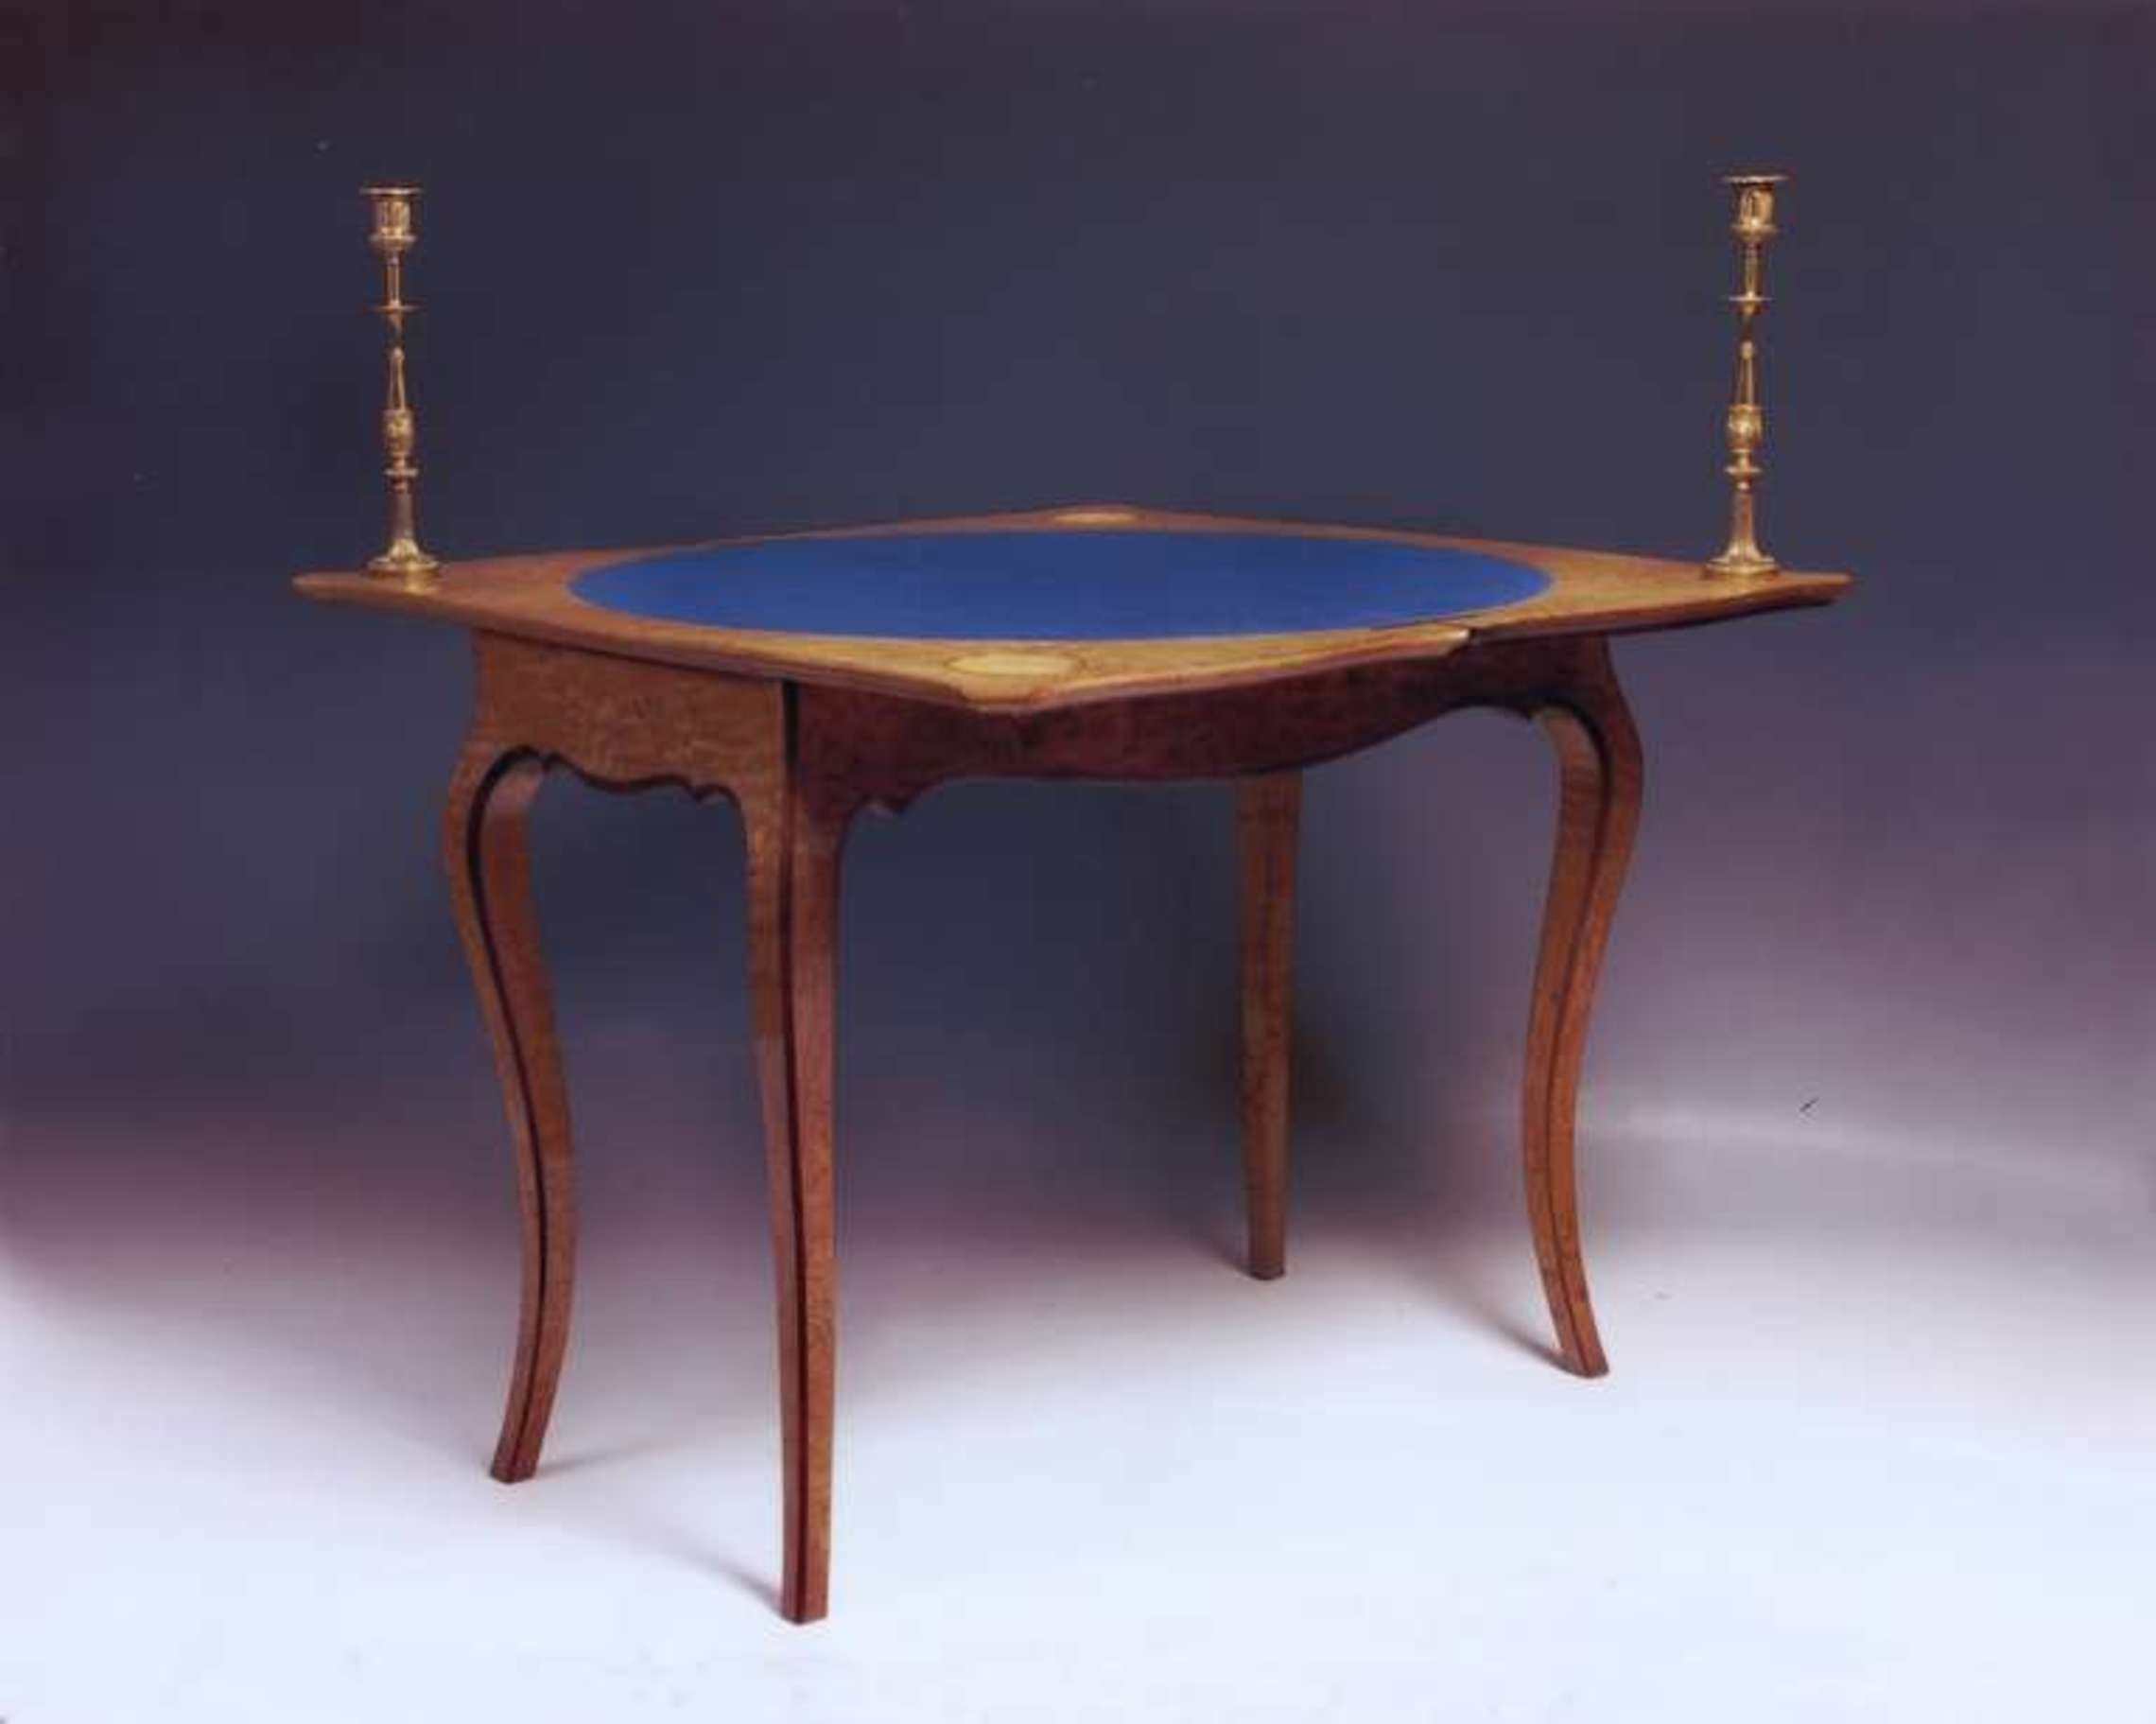 A Fine Card Table Stamped By The London Makers Holland & Sons